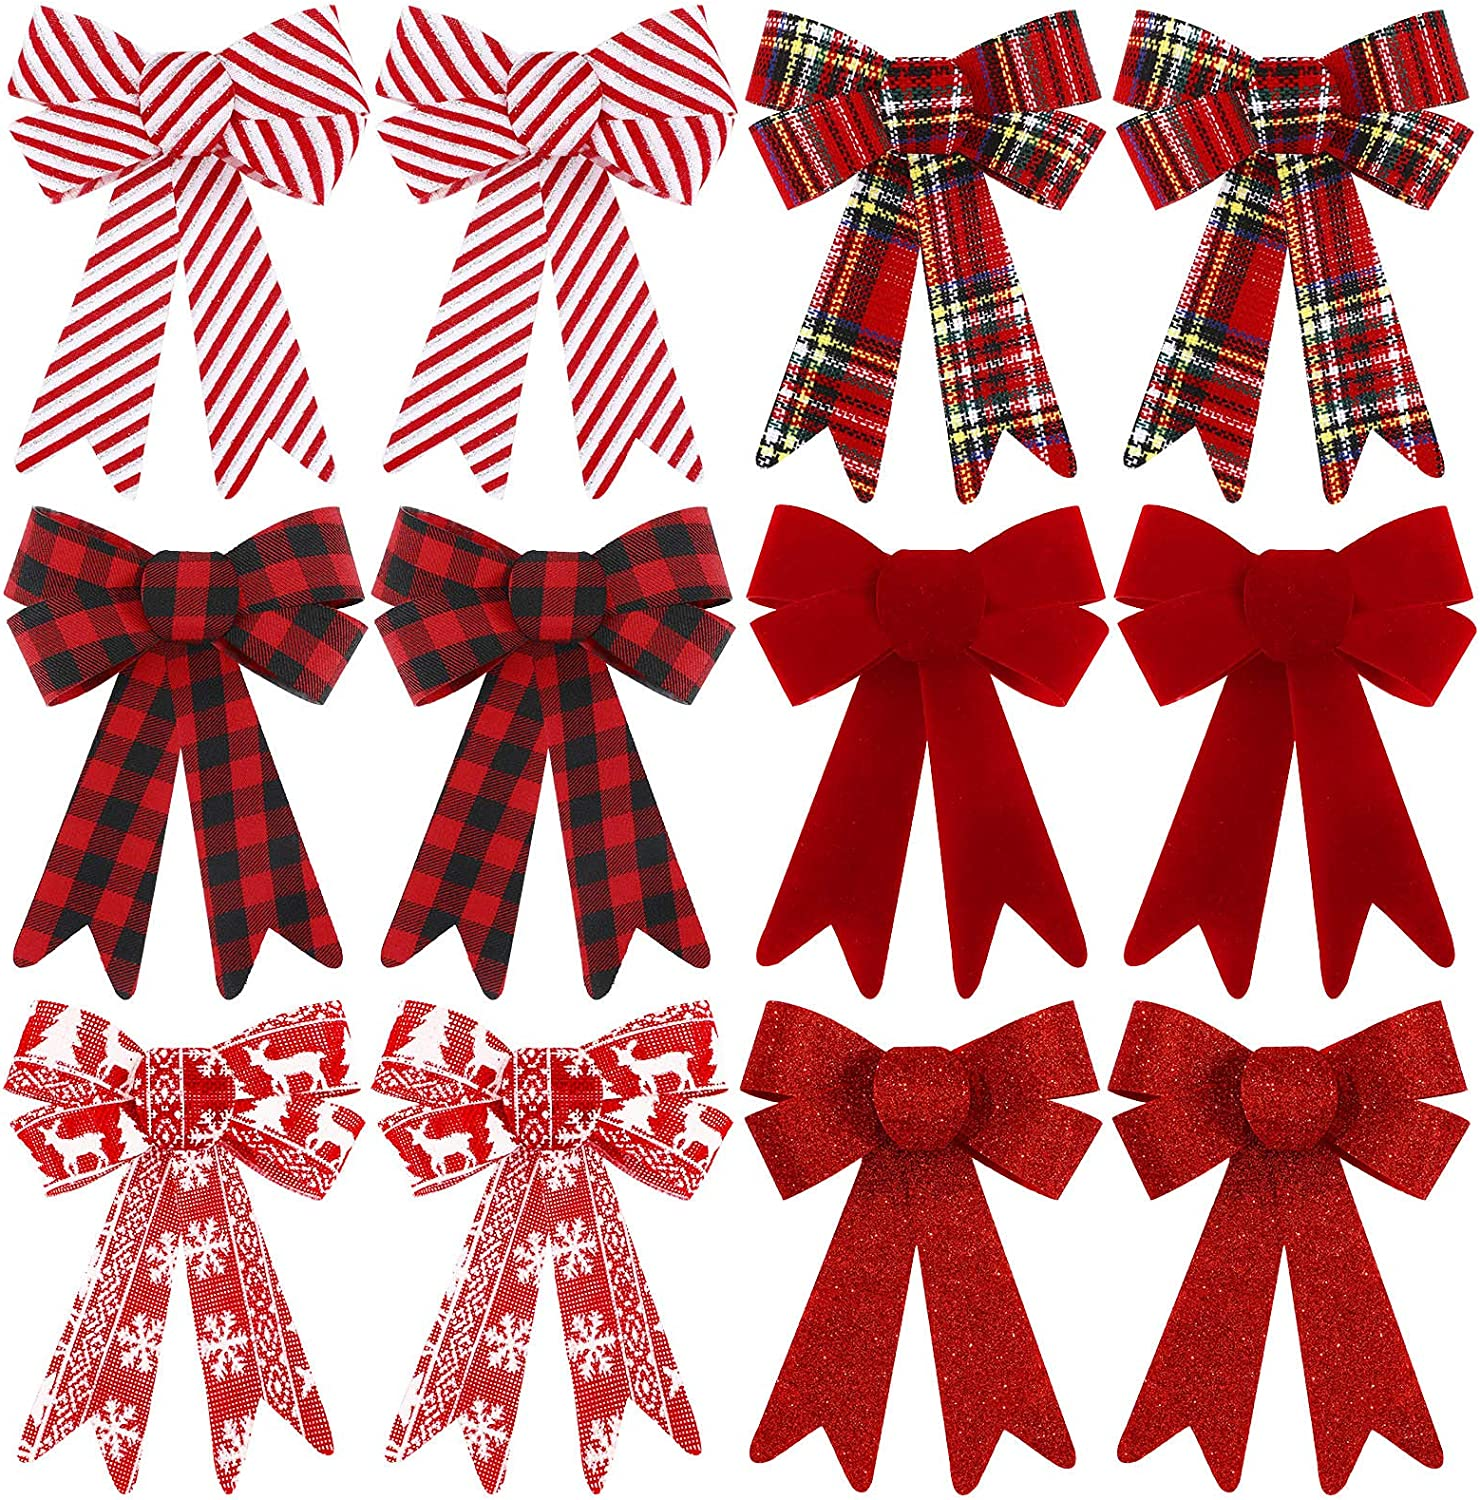 WILLBOND 12 Pieces Buffalo Plaid Bows Christmas Wreaths Bows Decorative PVC Bows Red Black Check Bows for Christmas Indoor Outdoor Decorations, 6 Styles, 5 x 7 Inch